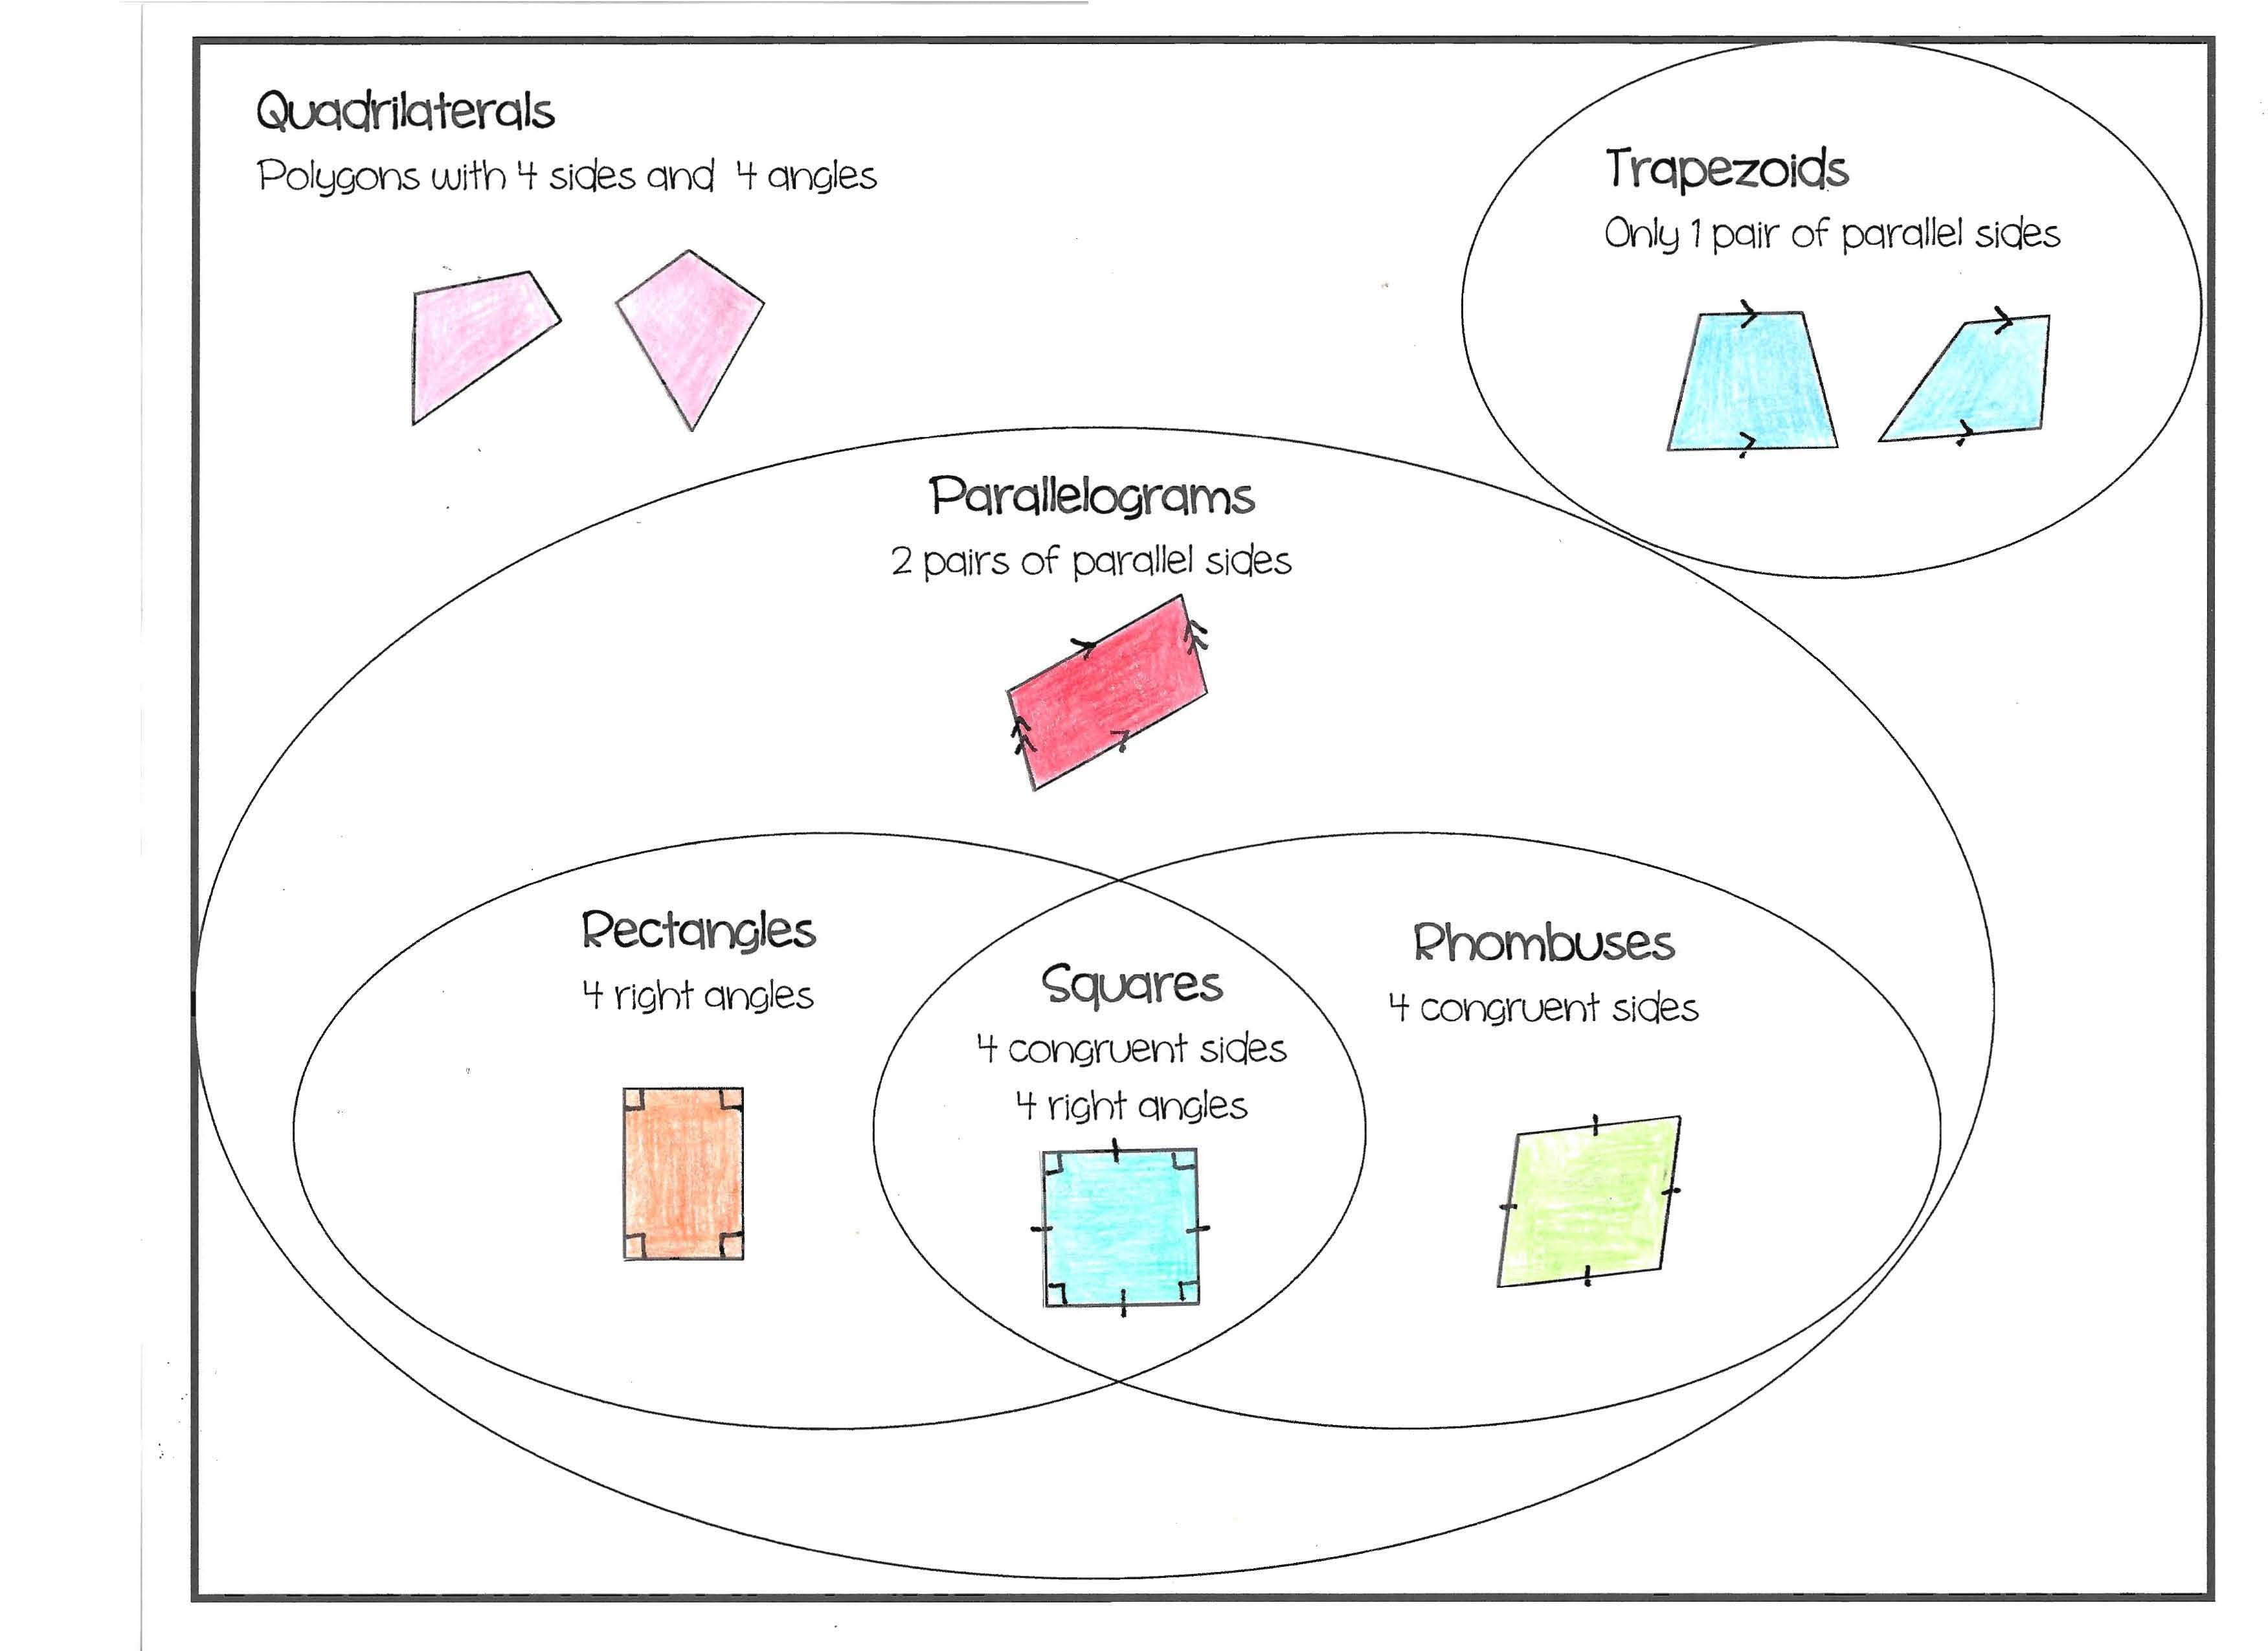 medium resolution of Classifying Quadrilaterals - Lessons - Blendspace